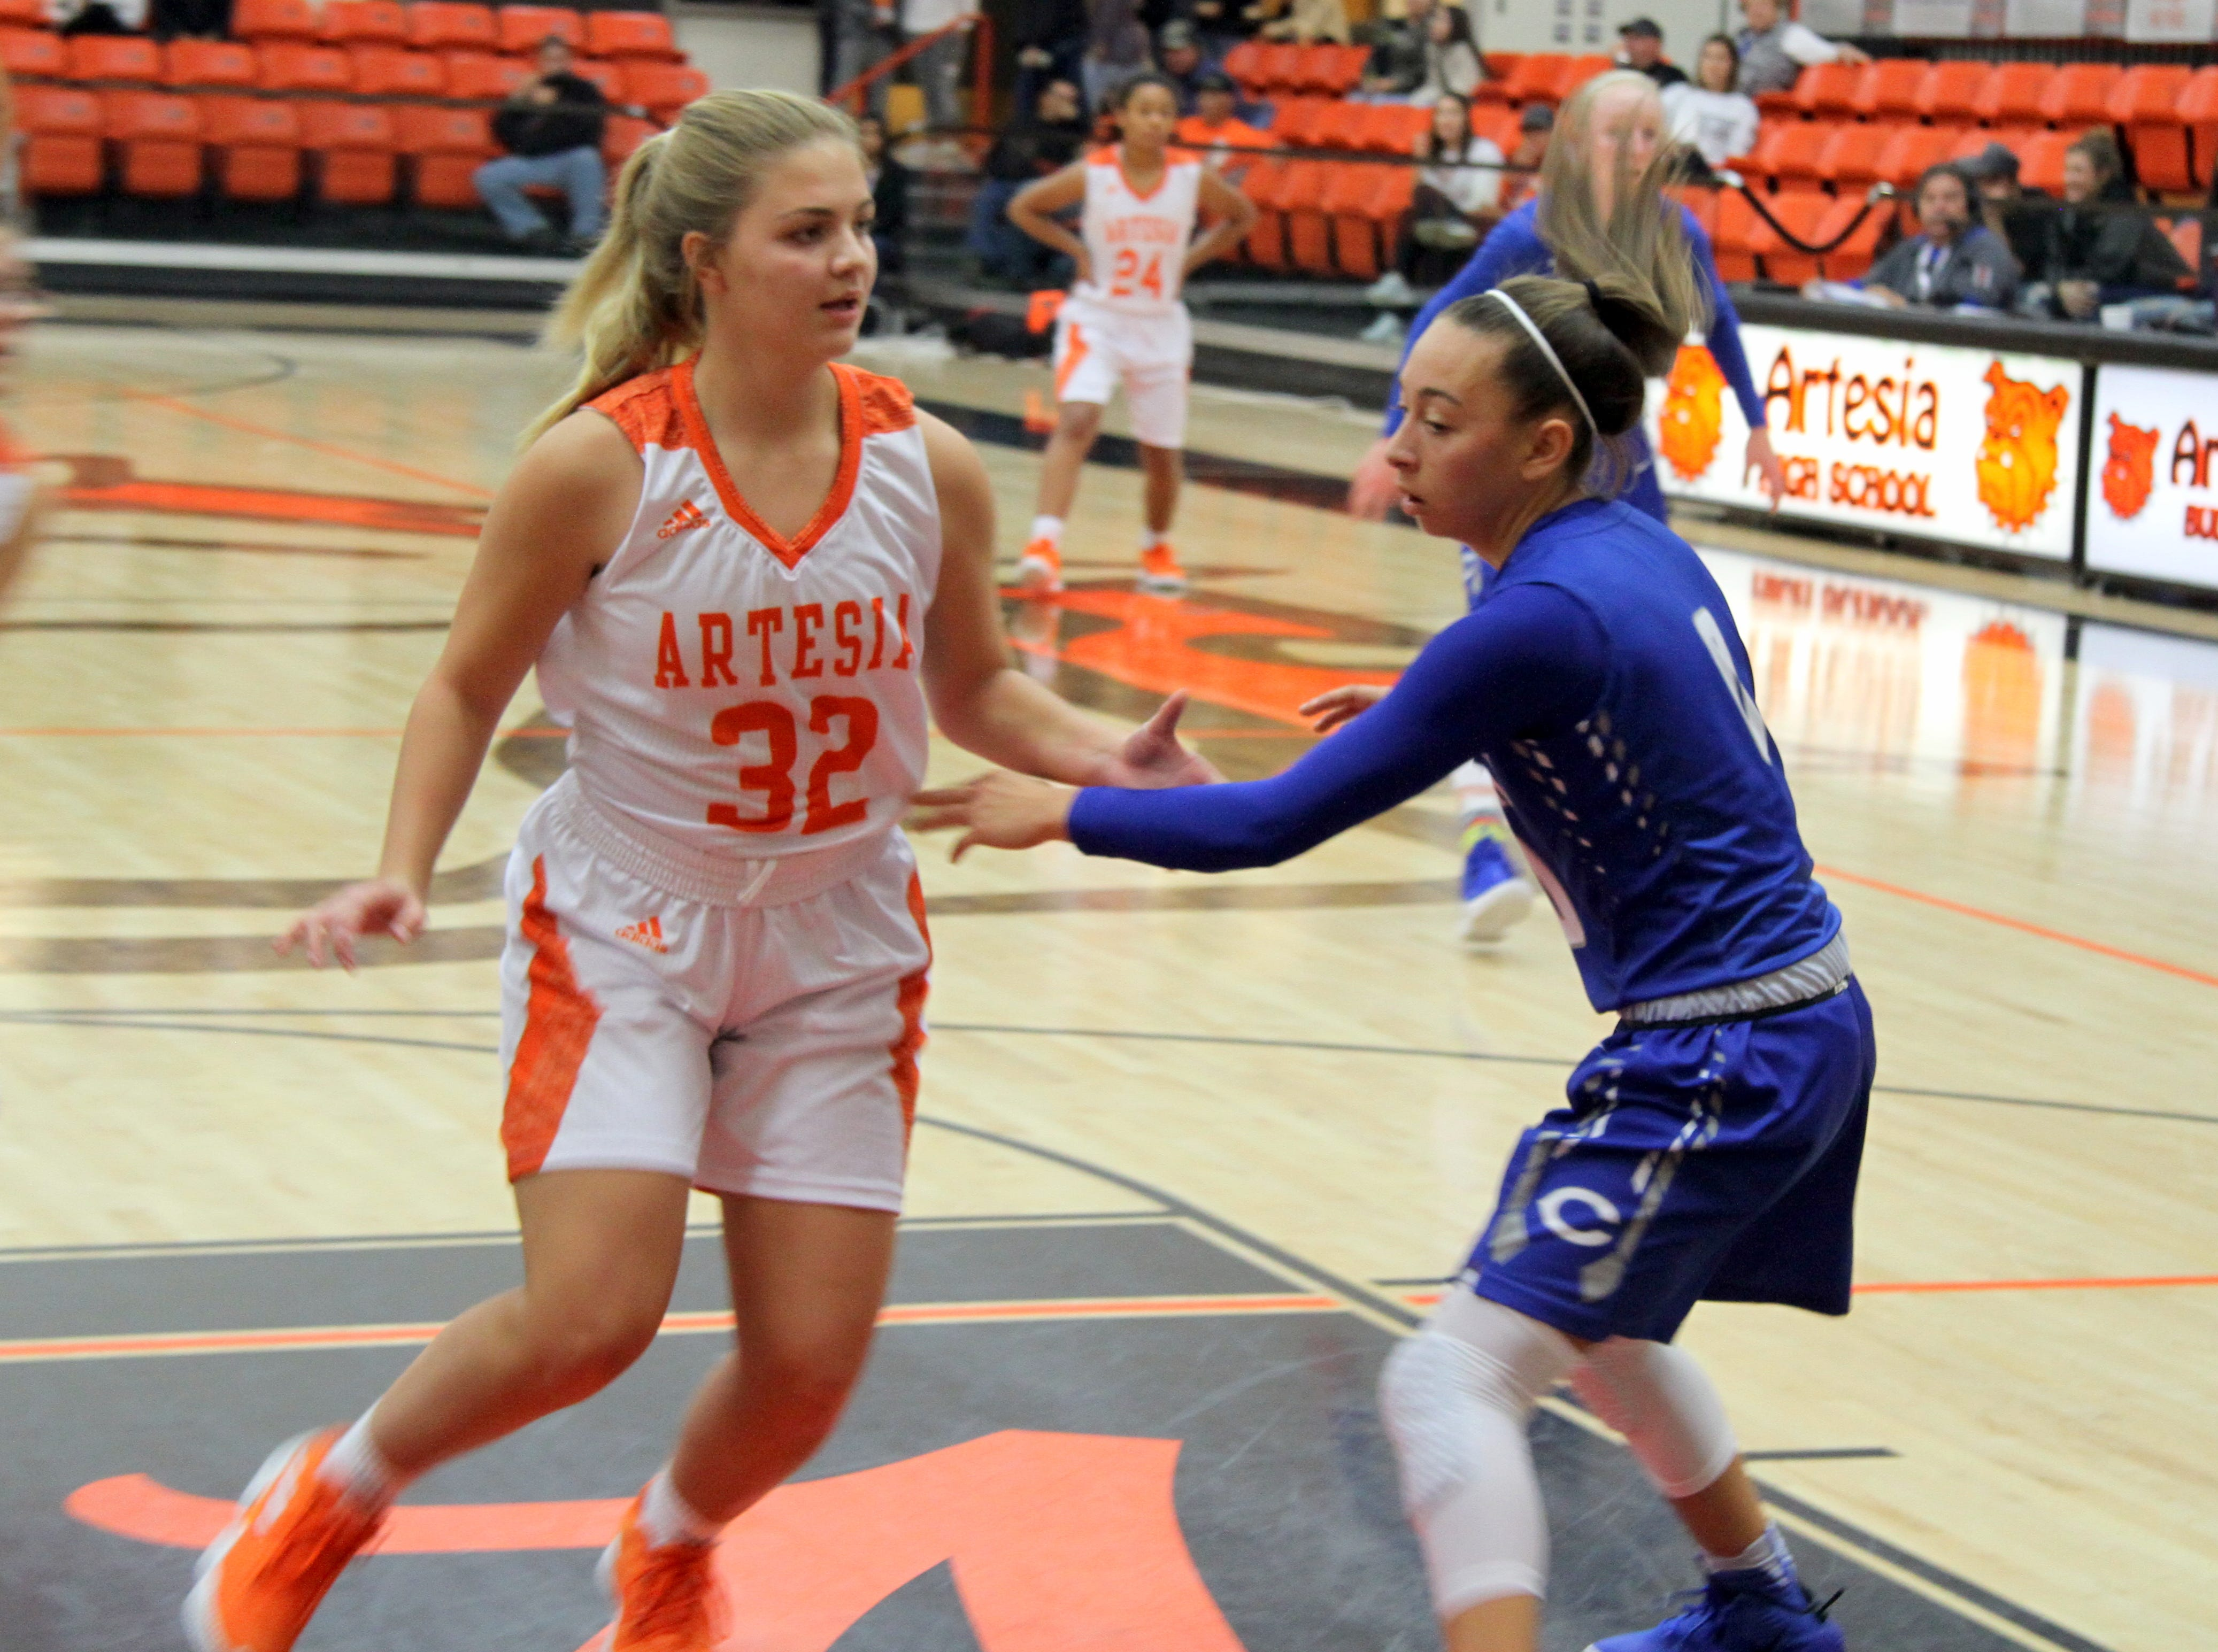 Talyn Lopez (32) tries to get open for a pass while Bailee Molina guards her during Saturday's third-place game in Artesia.